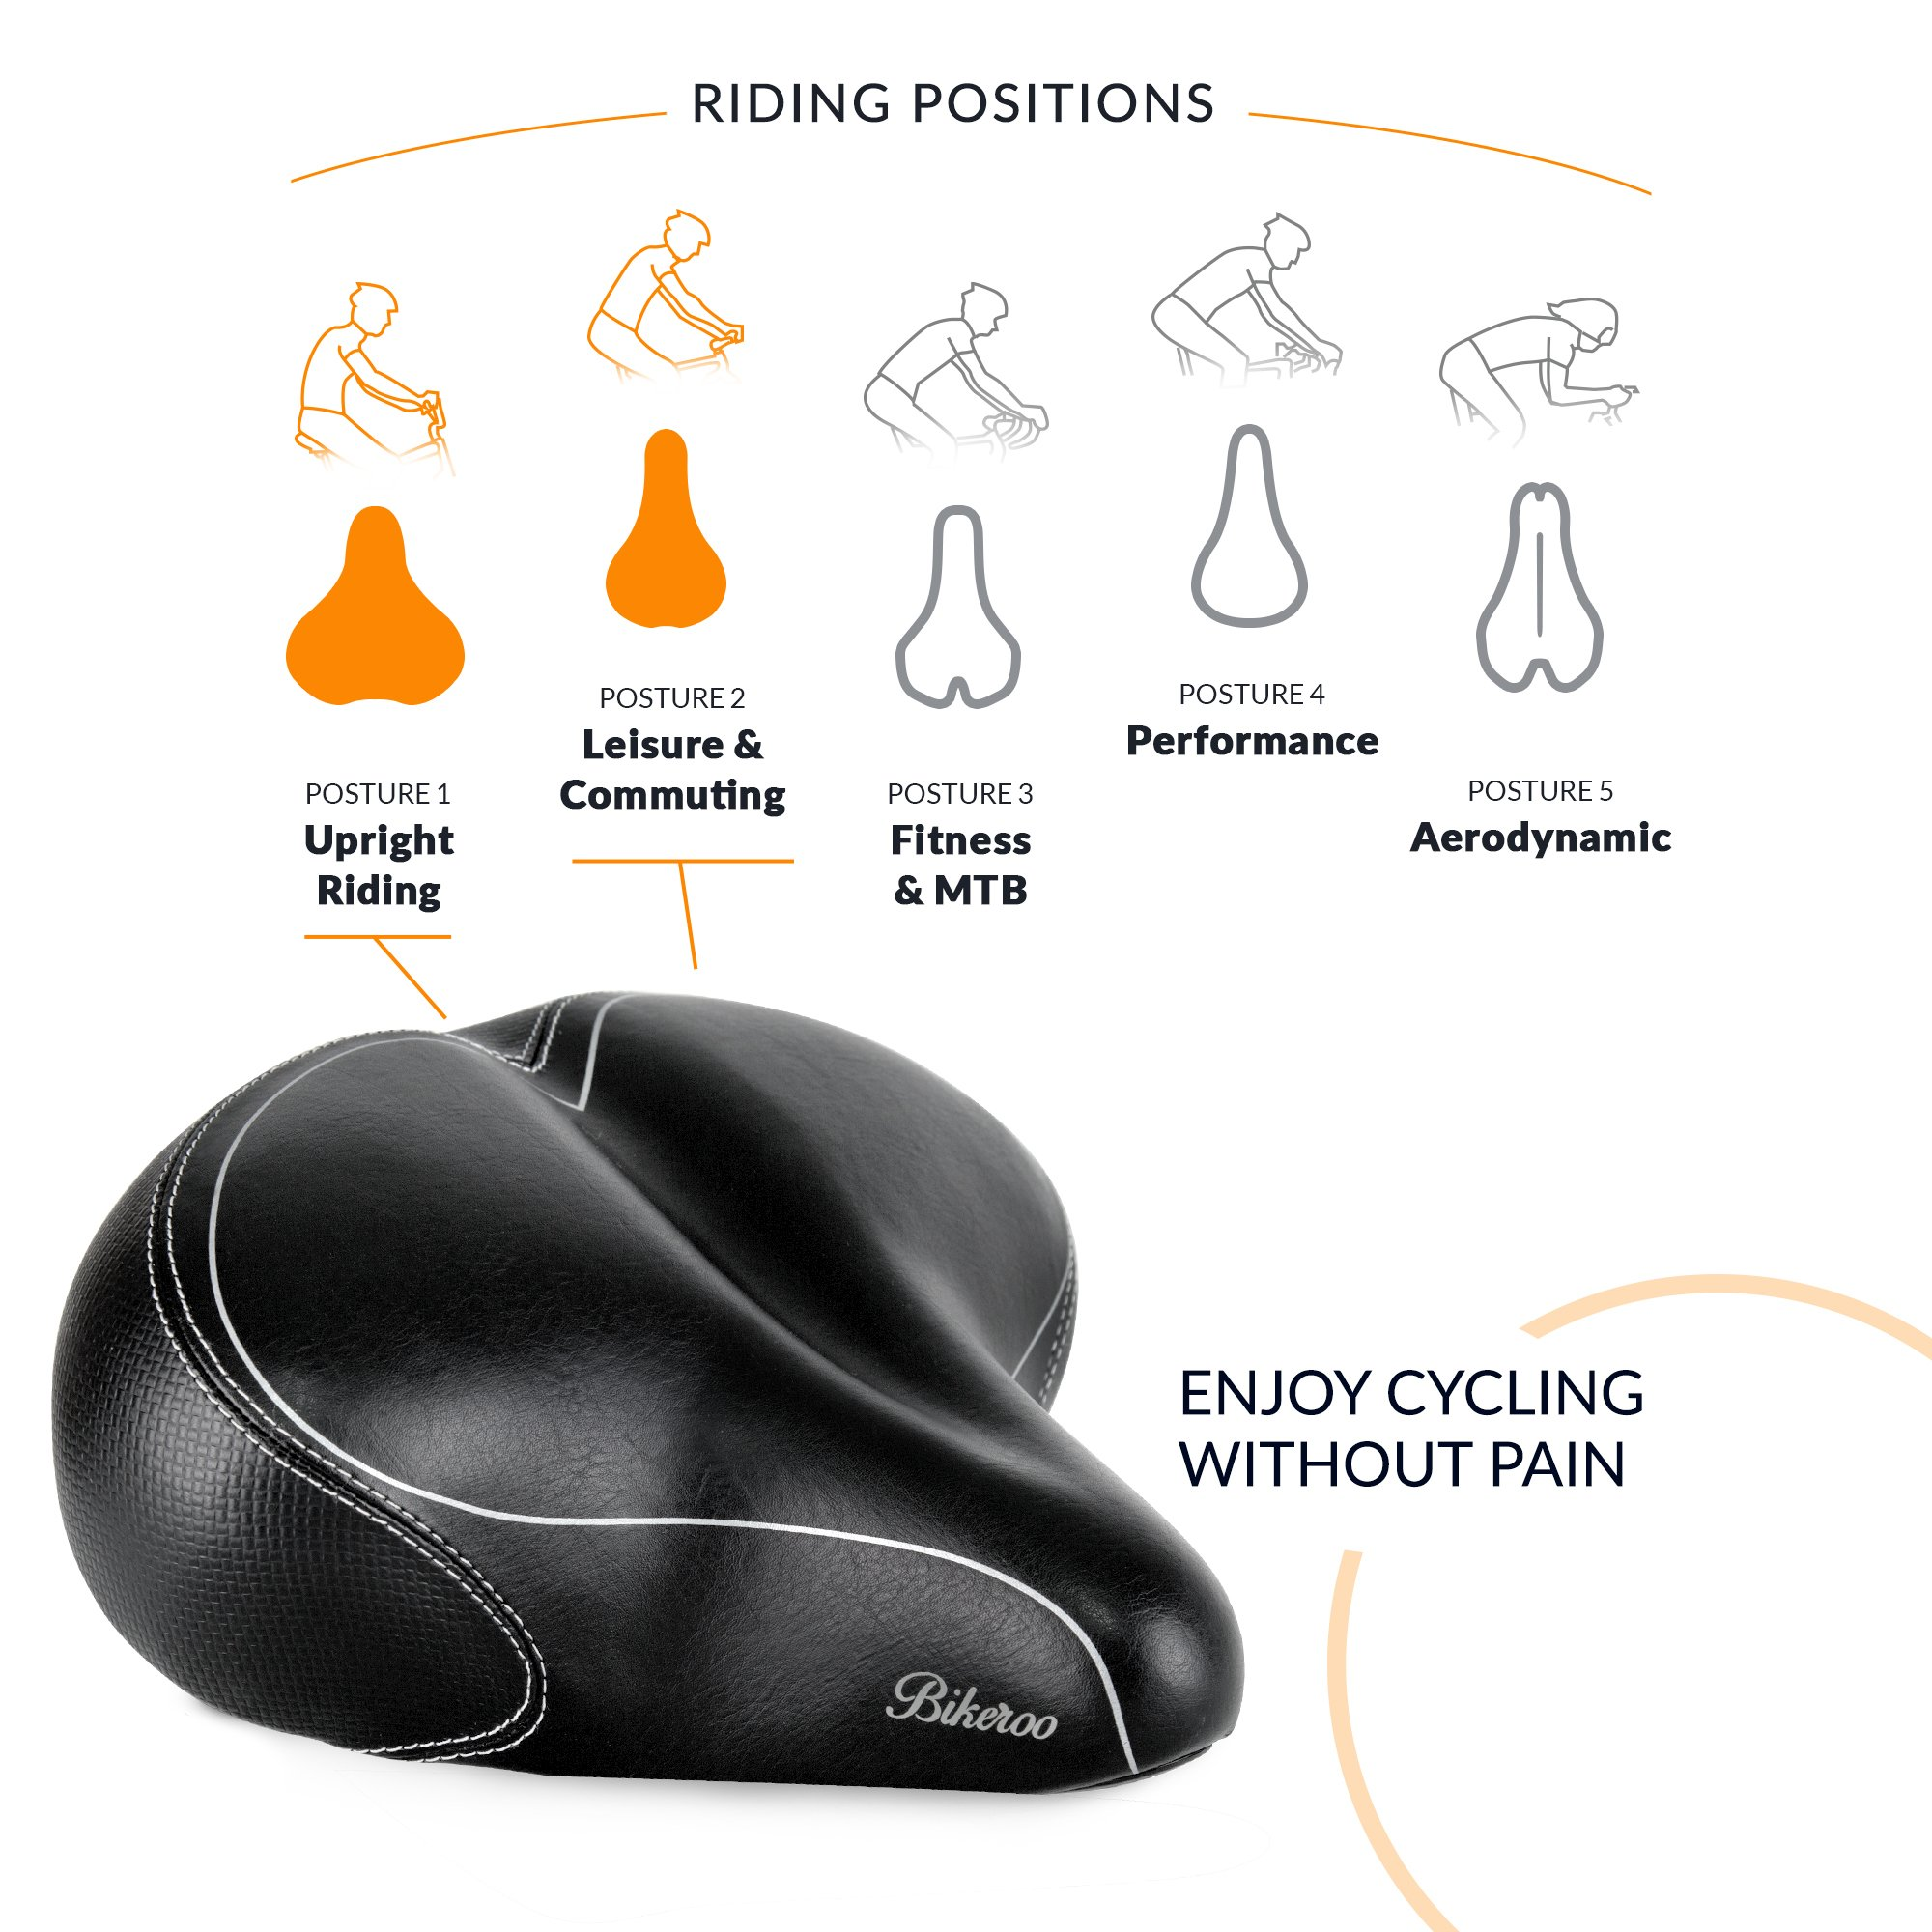 Bikeroo Oversized Comfort Bike Seat Most Comfortable Replacement Bicycle Saddle - Universal Fit for Exercise Bike and Outdoor Bikes - Wide Soft Padded Bike Saddle for Women and Men by Bikeroo (Image #7)